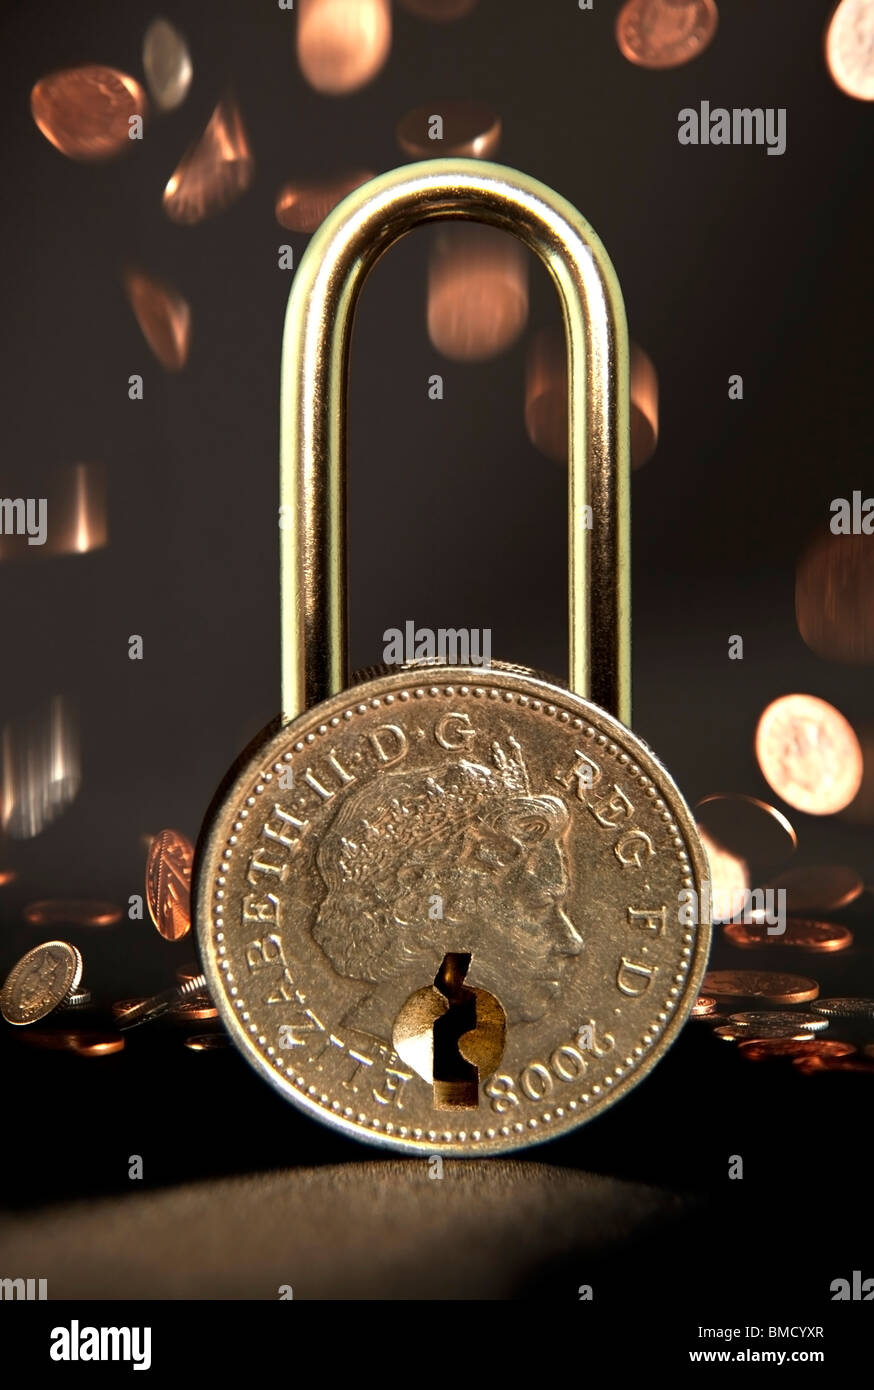 Find the answer to unlocking your money worries; solutions into your finances - Stock Image